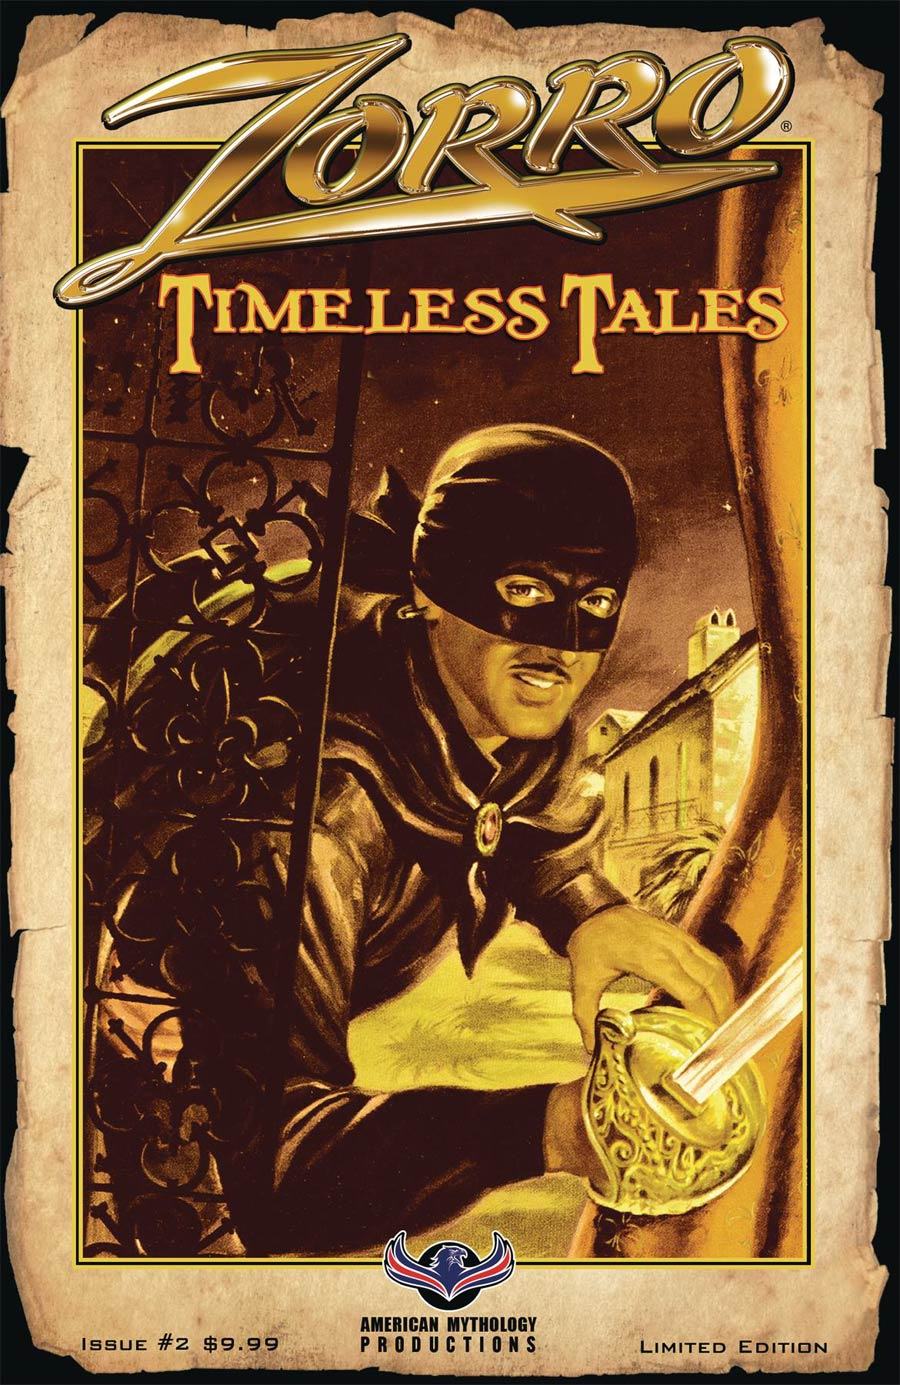 Zorro Timeless Tales #2 Cover B Limited Edition Pulp Cover